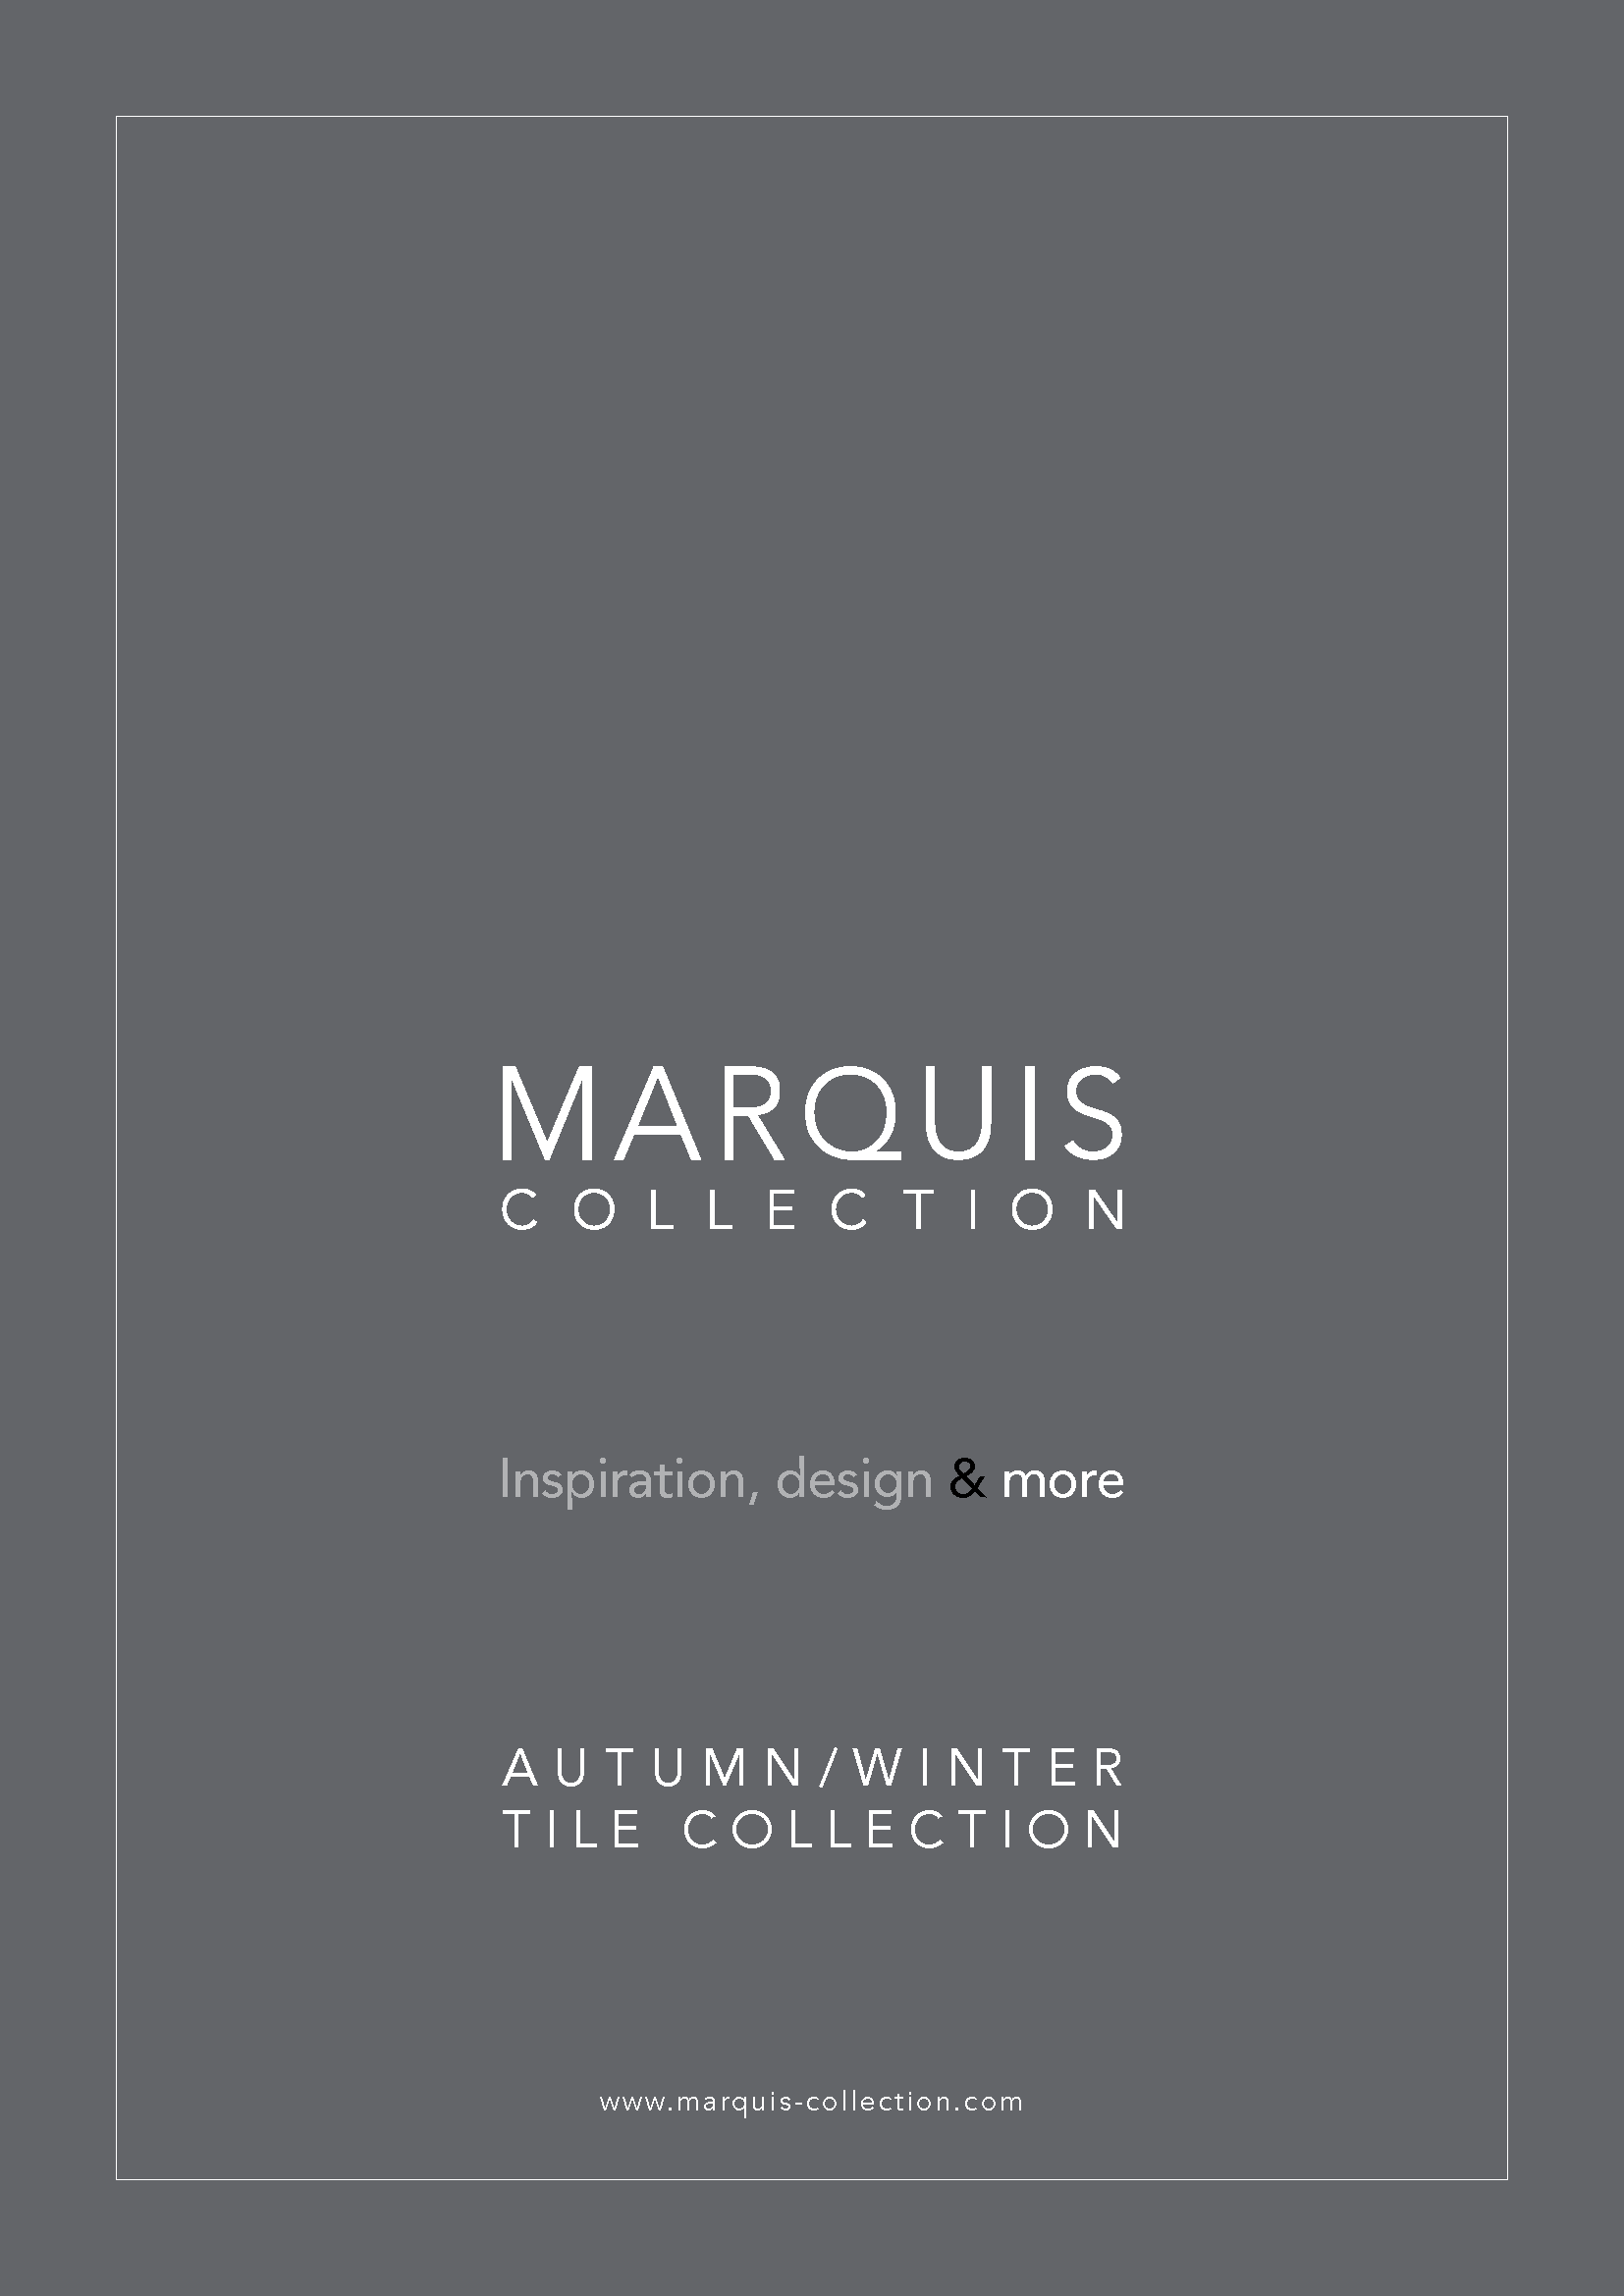 Marquis Collection catalogue